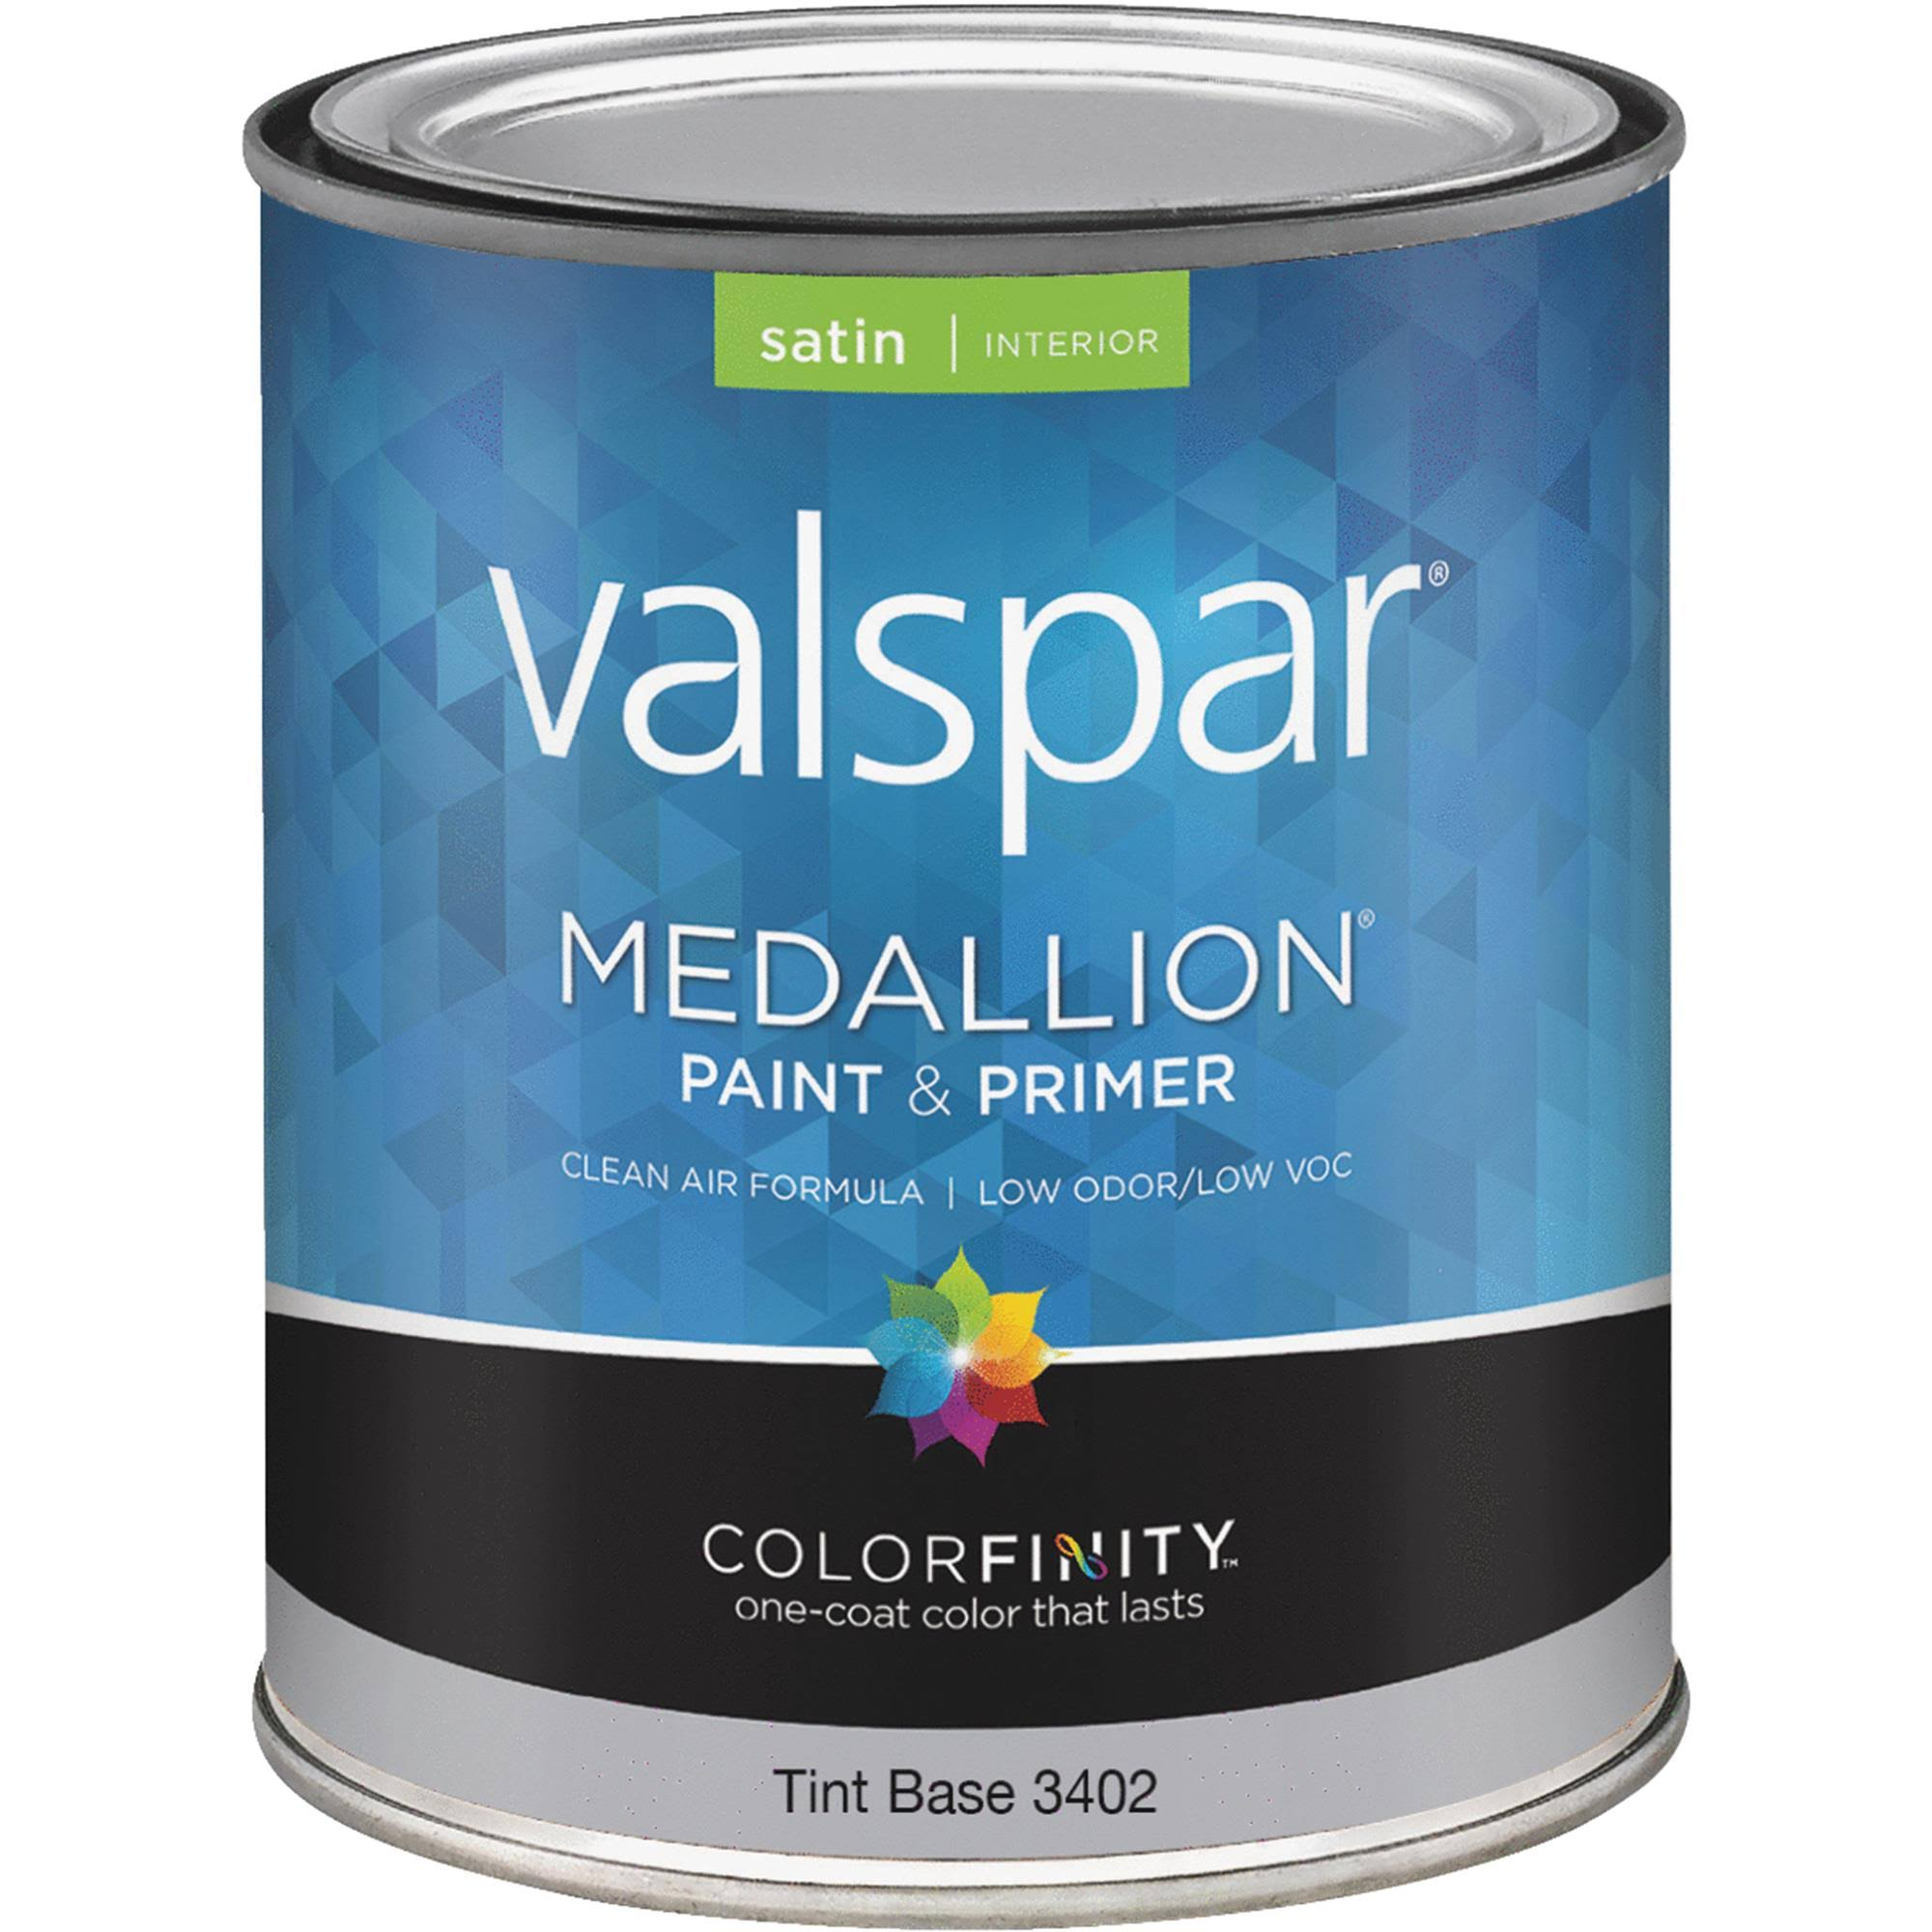 Valspar Medallion Interior Satin Paint